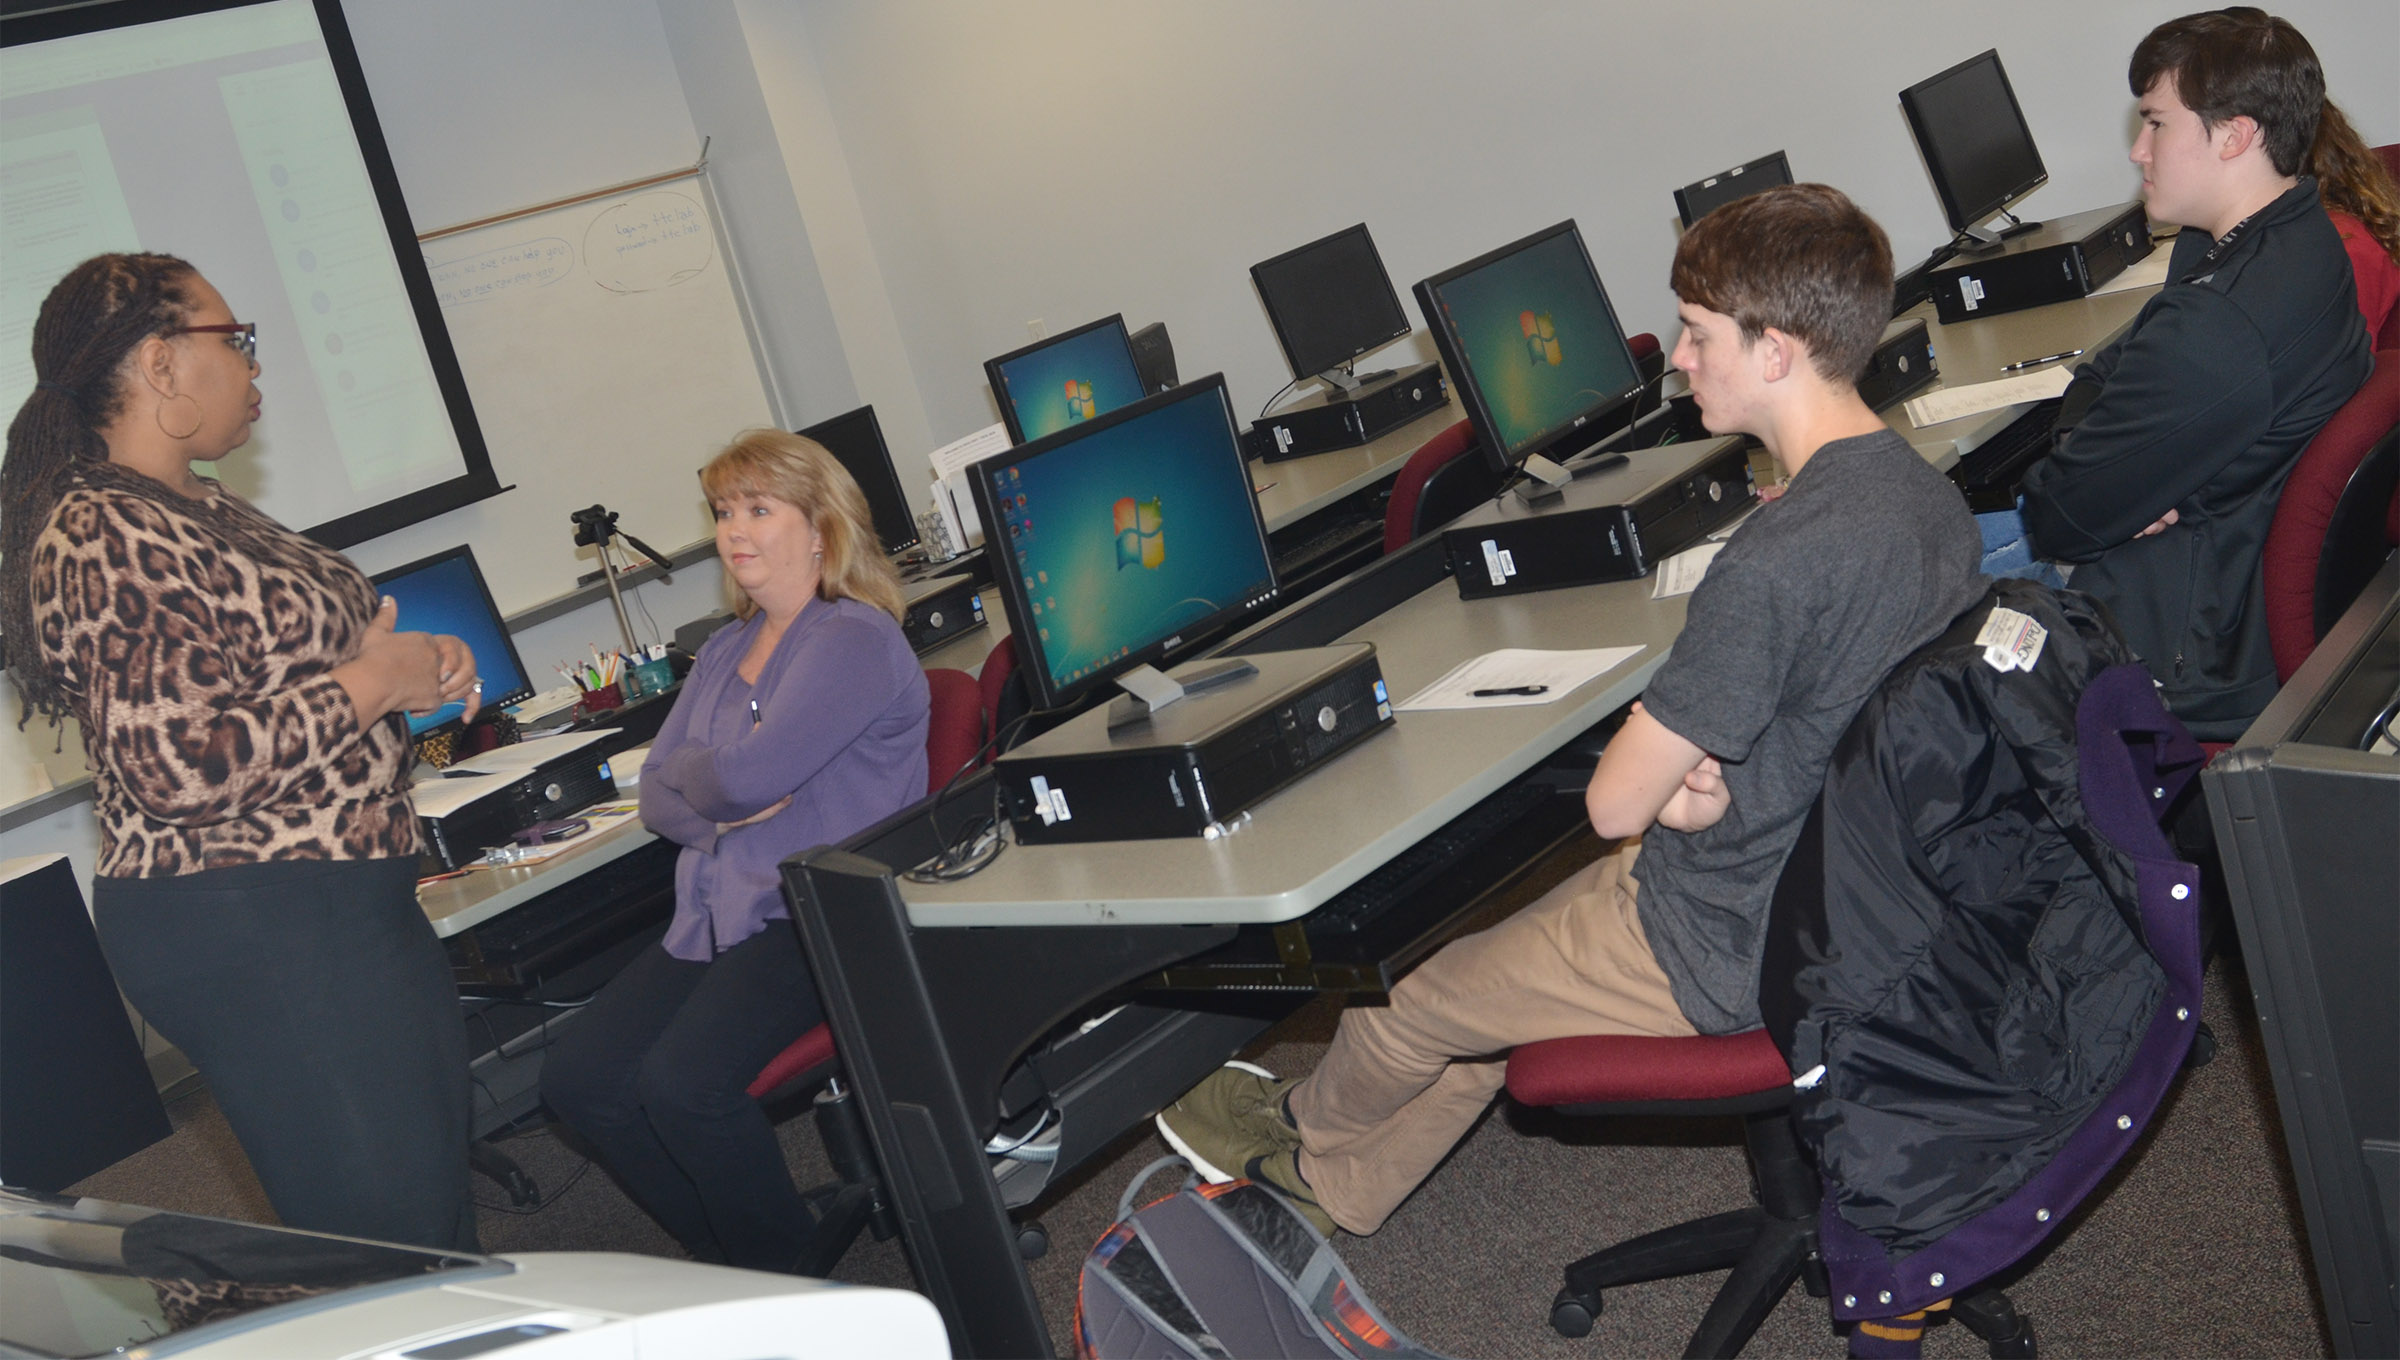 Monique Morton, director of math and computer science at Advance Kentucky, recently came to Campbellsville to lead Sonya Kessler's AP computer science students in a study session. Sonya Kessler is at left and CHS seniors Murphy Lamb and Zack Settle are at right.